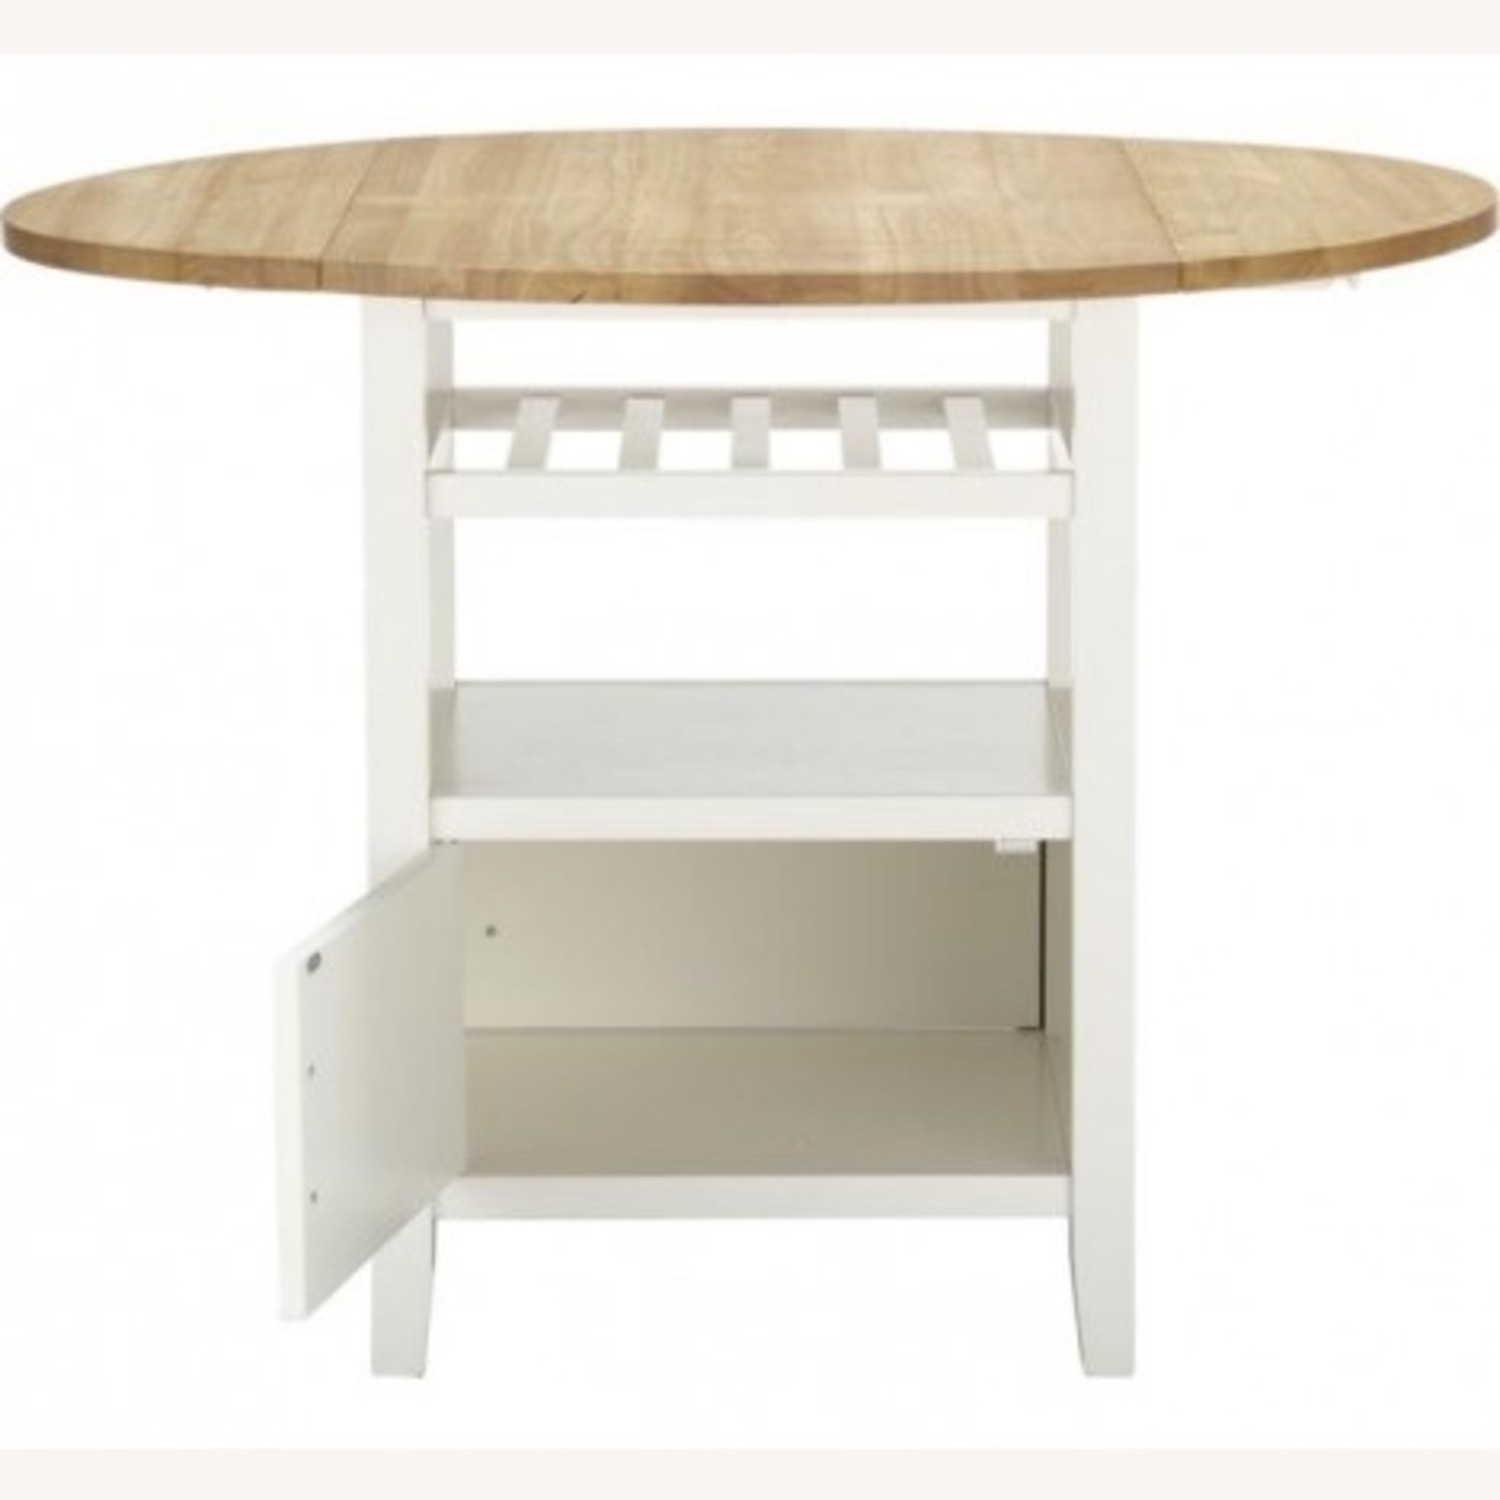 Crate & Barrel Belmont High Dining Table - image-1